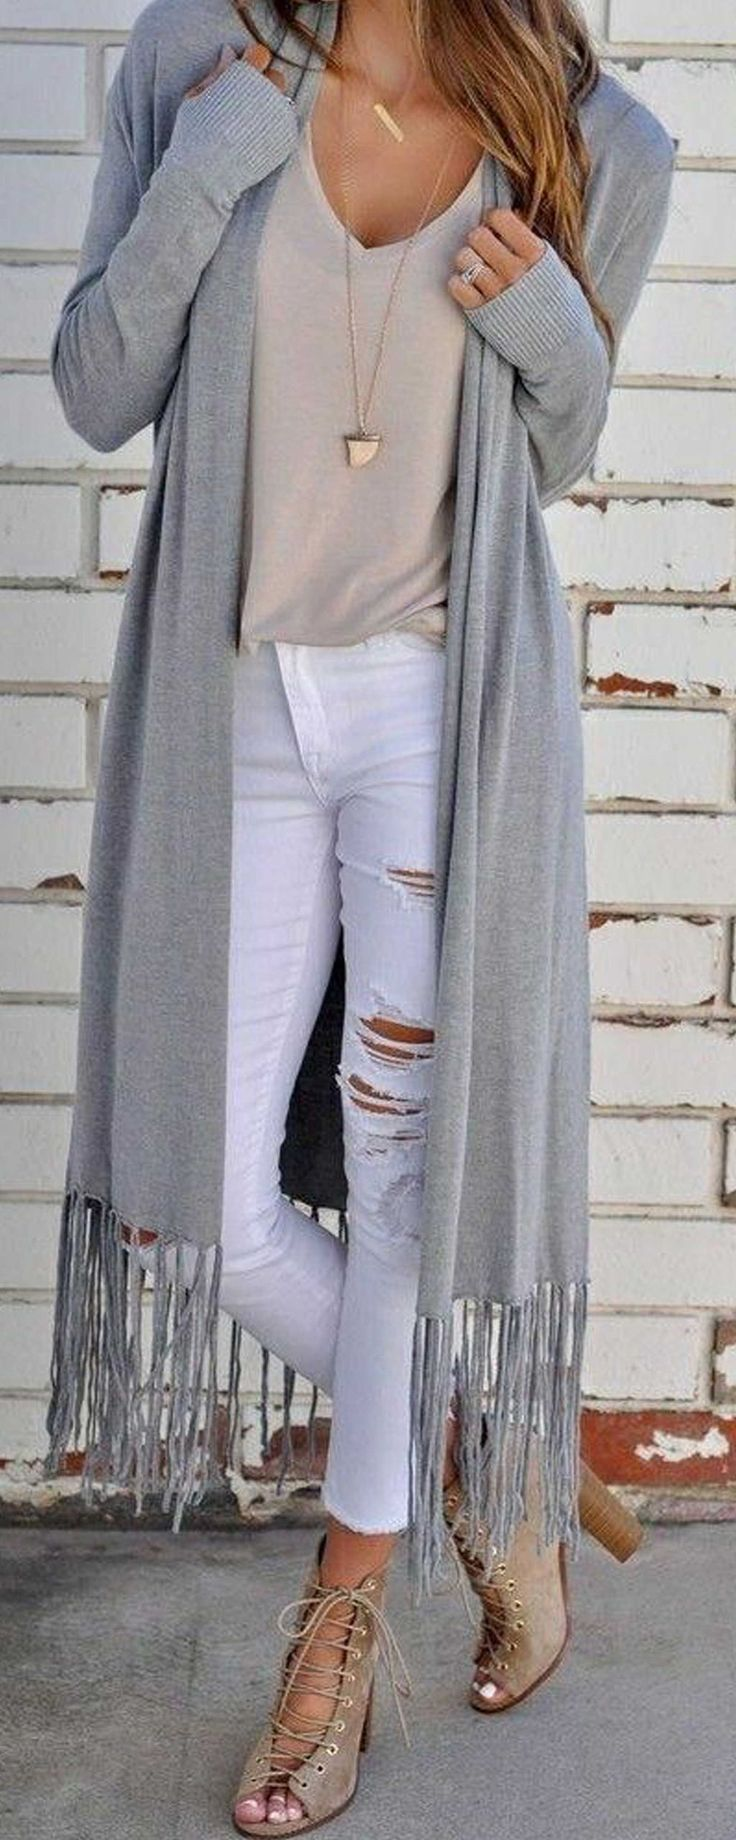 Awesome 57 Casual Winter Outfits Ideas With Long Cardigans. More at http://trendwear4you.com/2018/01/04/57-casual-winter-outfits-ideas-long-cardigans/ #casualwinteroutfit